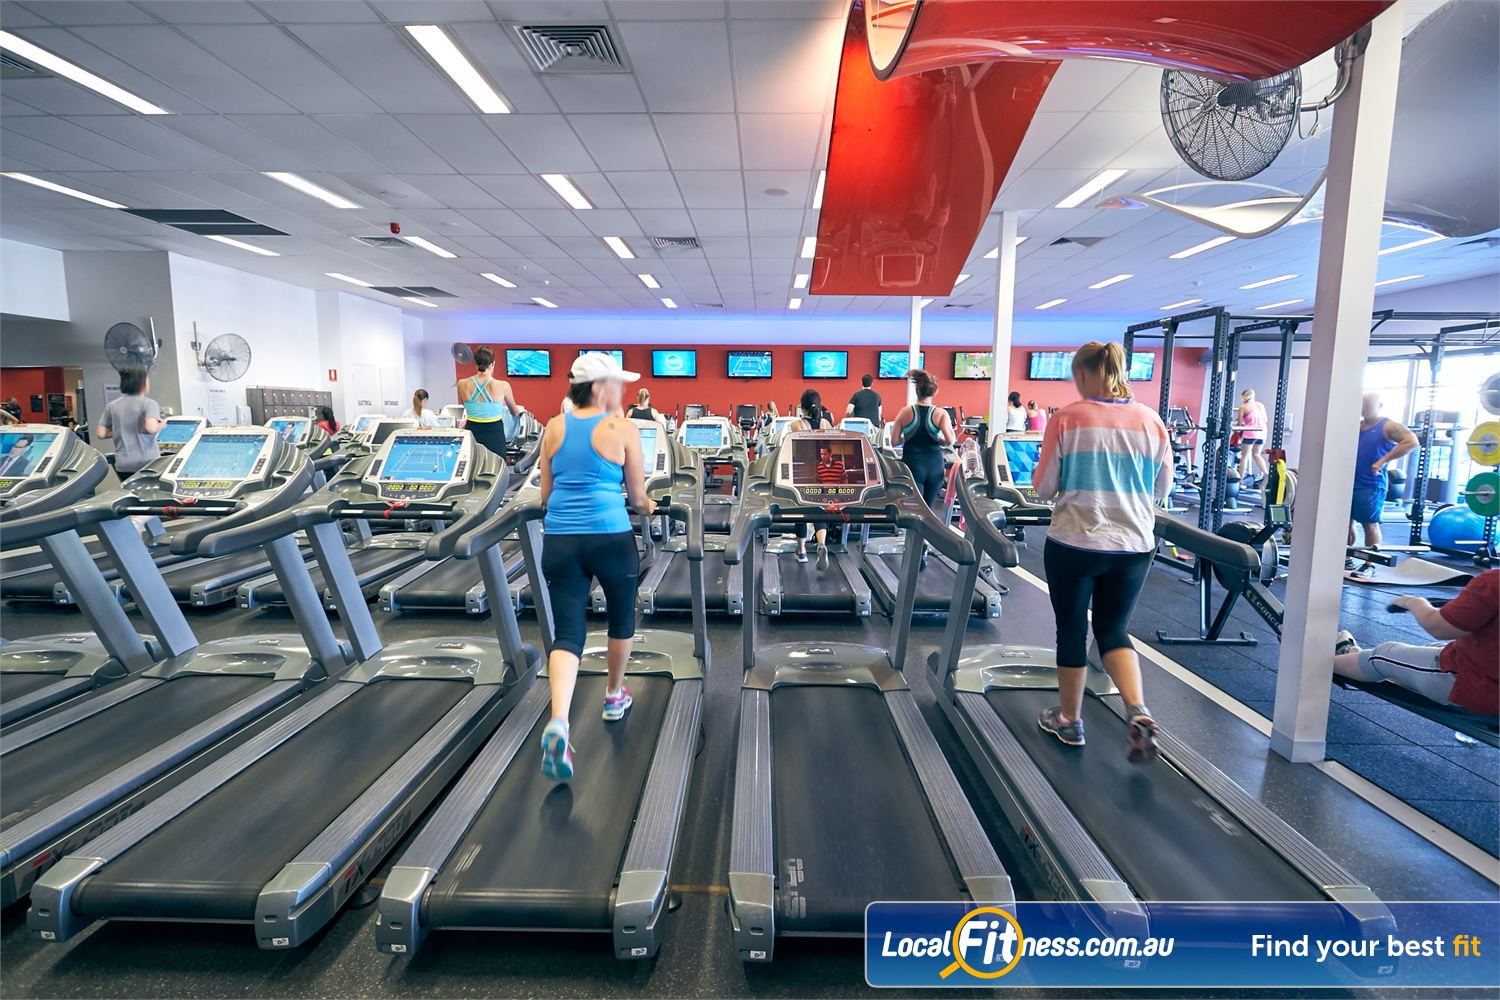 Goodlife Health Clubs Cross Roads Near Hawthorn Tune into your favorite shows on your personalised LCD screen or cardio theatre.